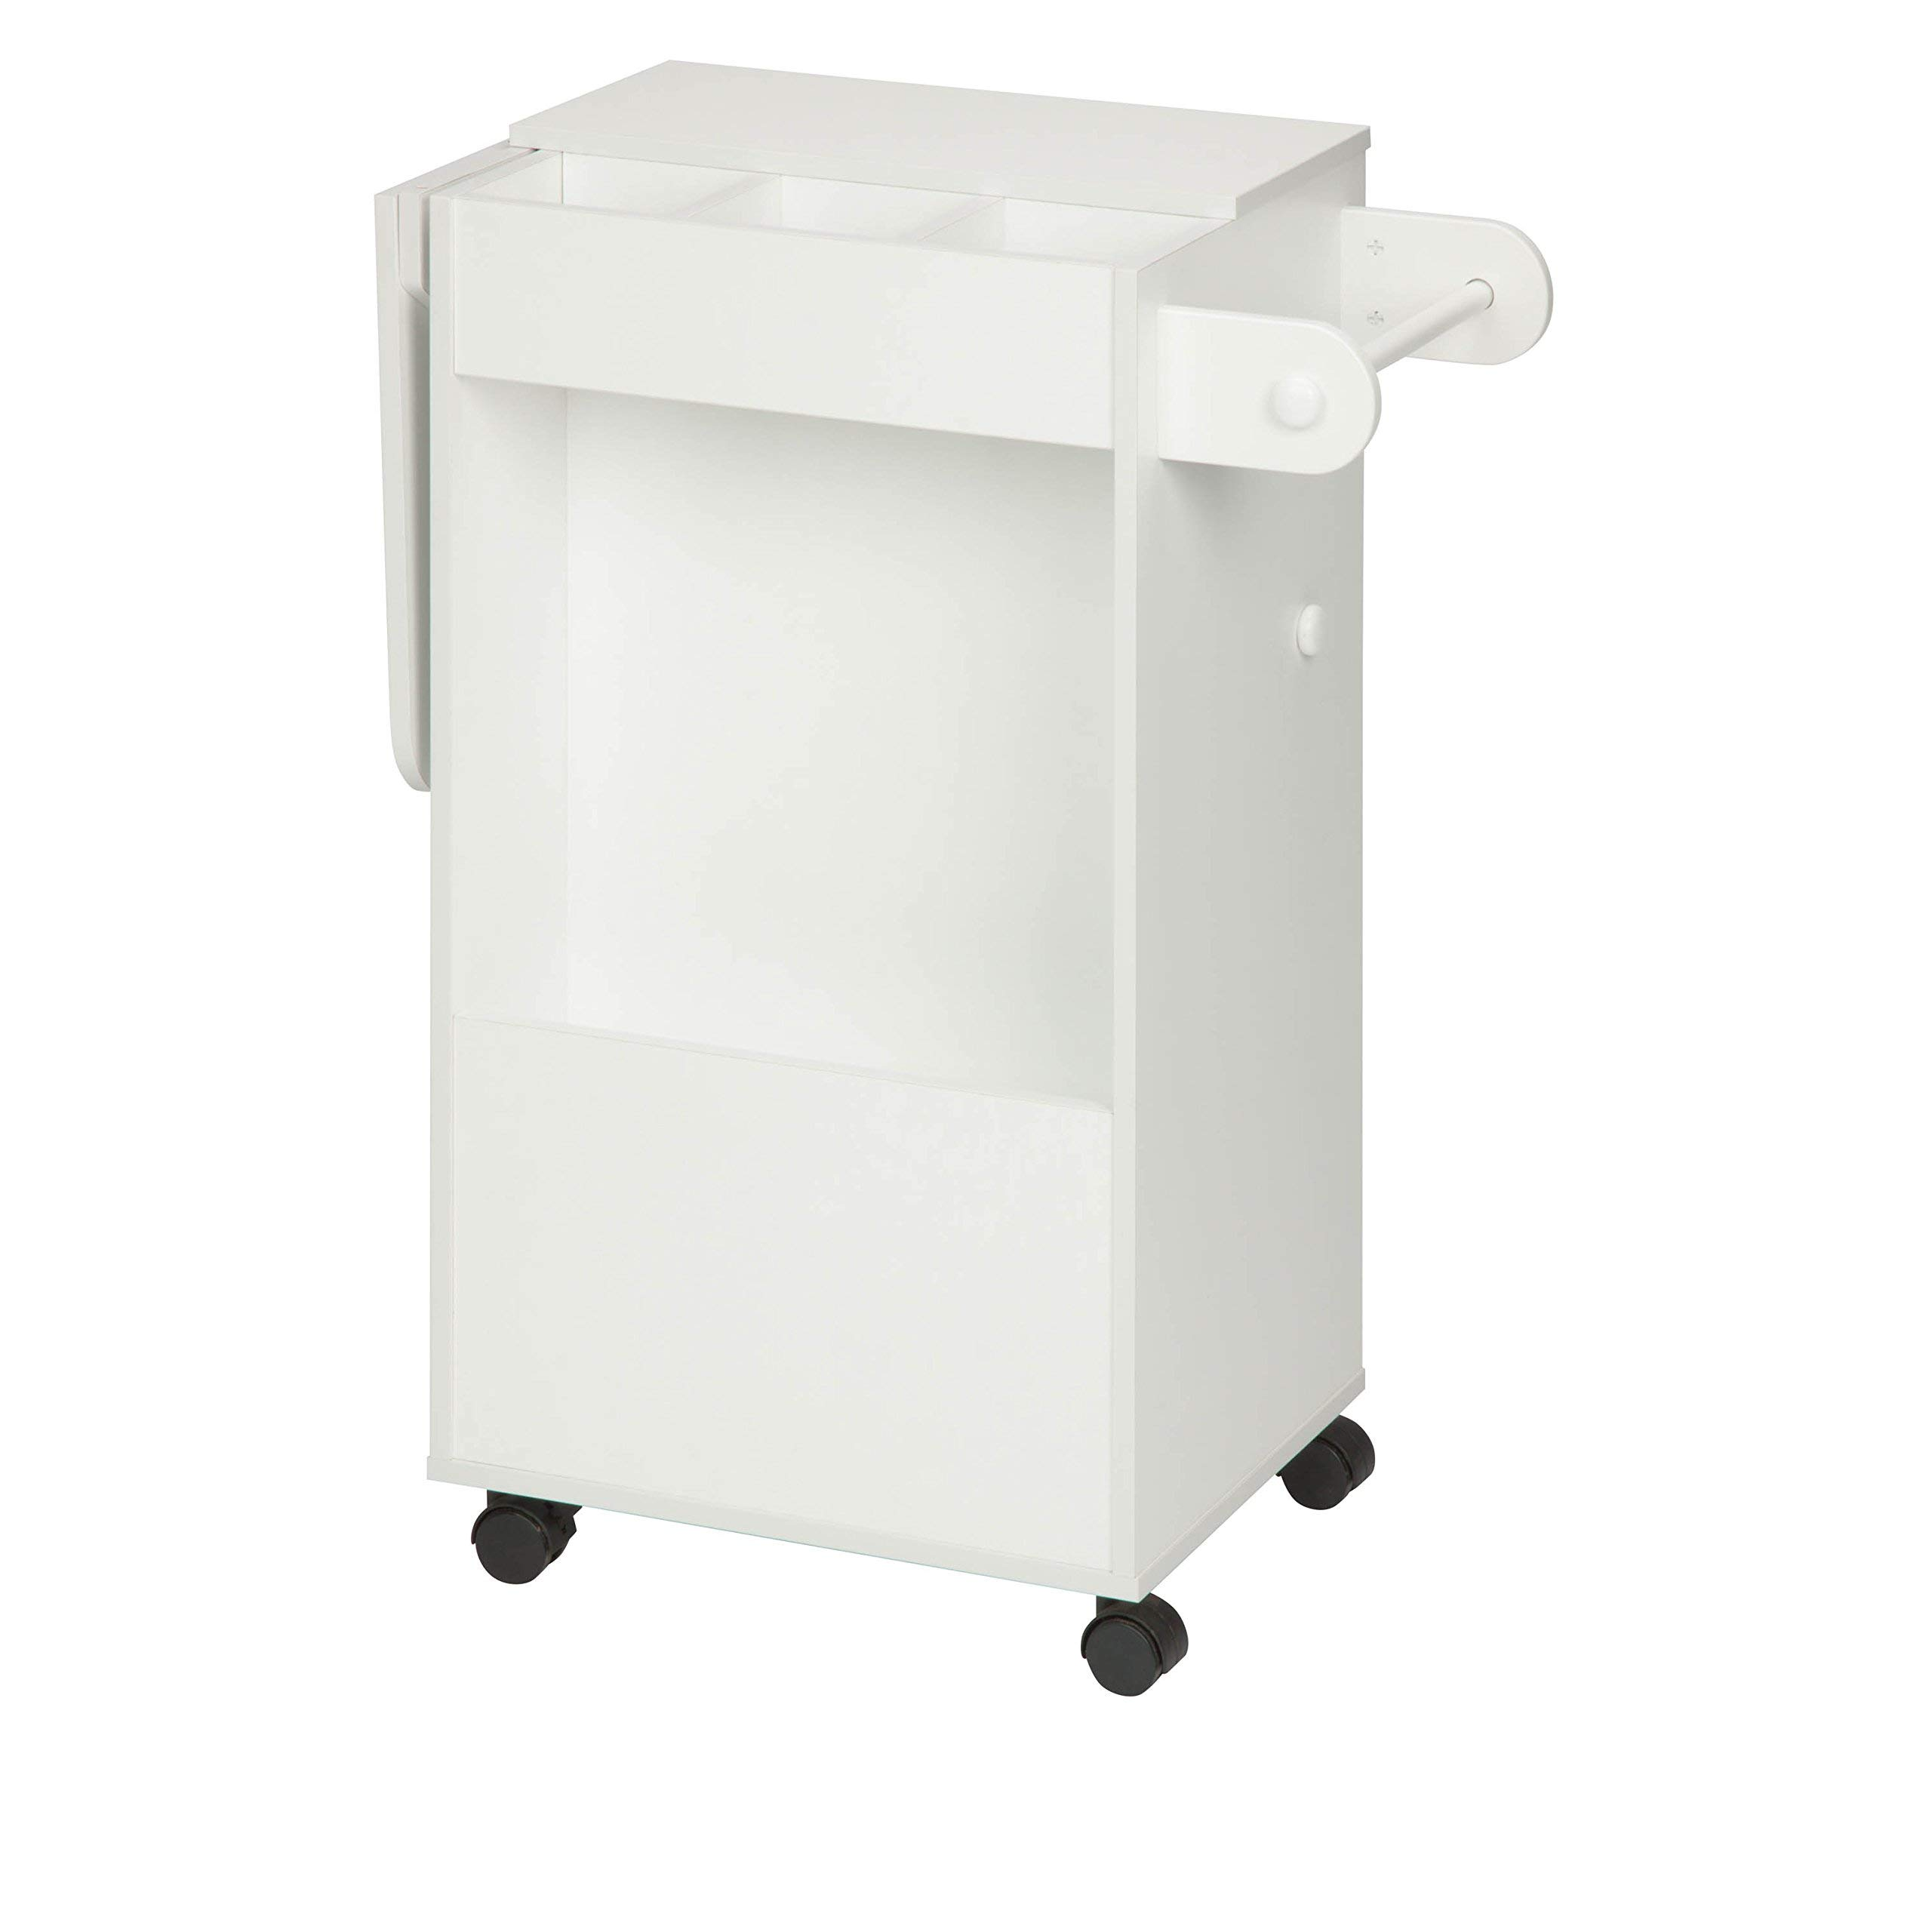 Honey-Can-Do CRT-06343 Rolling Craft Storage Cart, White by Honey-Can-Do